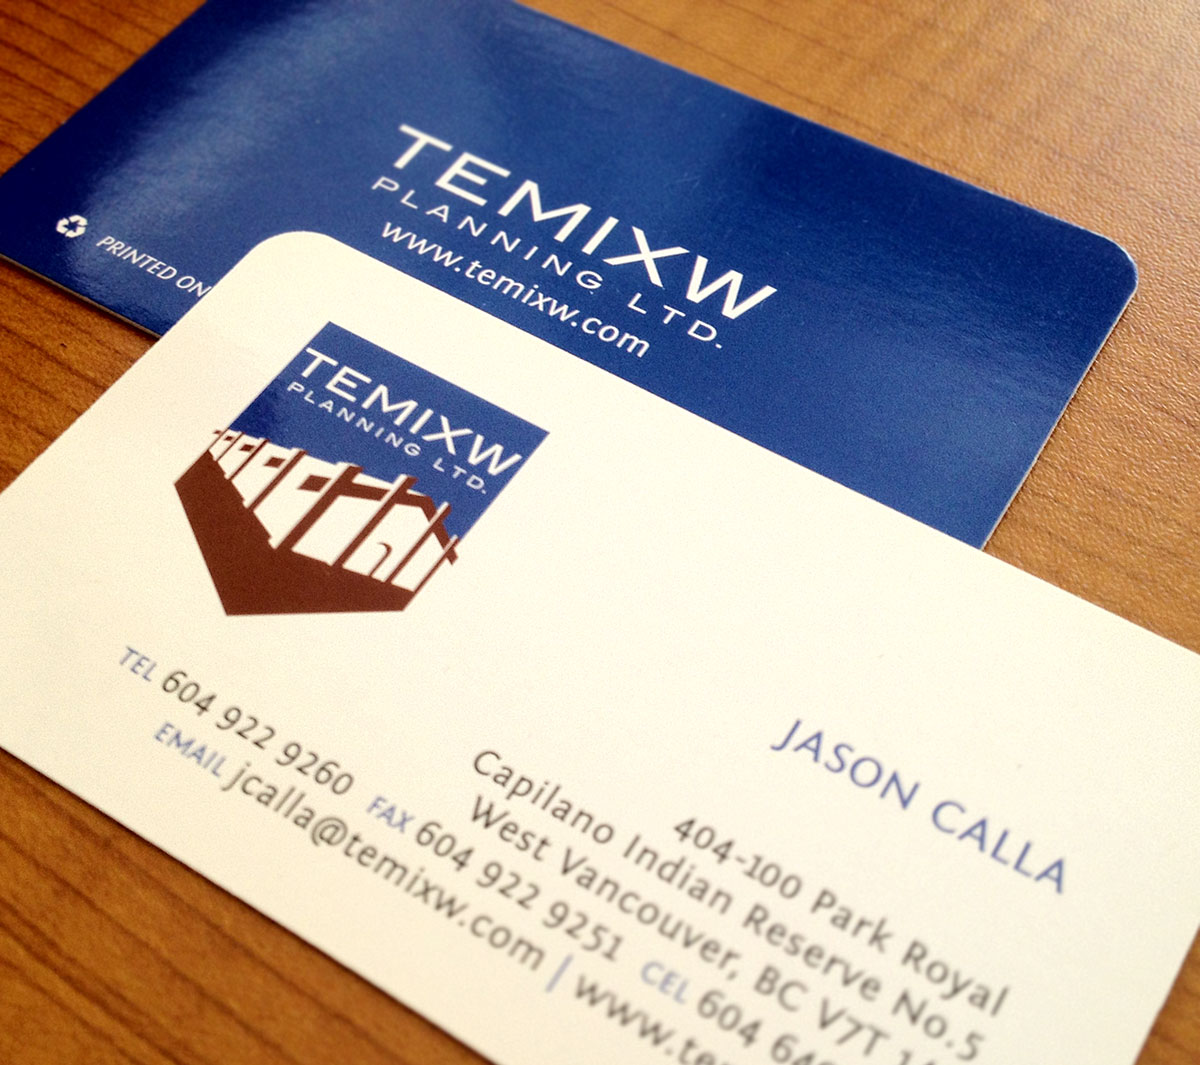 Die-cut rounded corner cards for Jason Calla at Temixw.